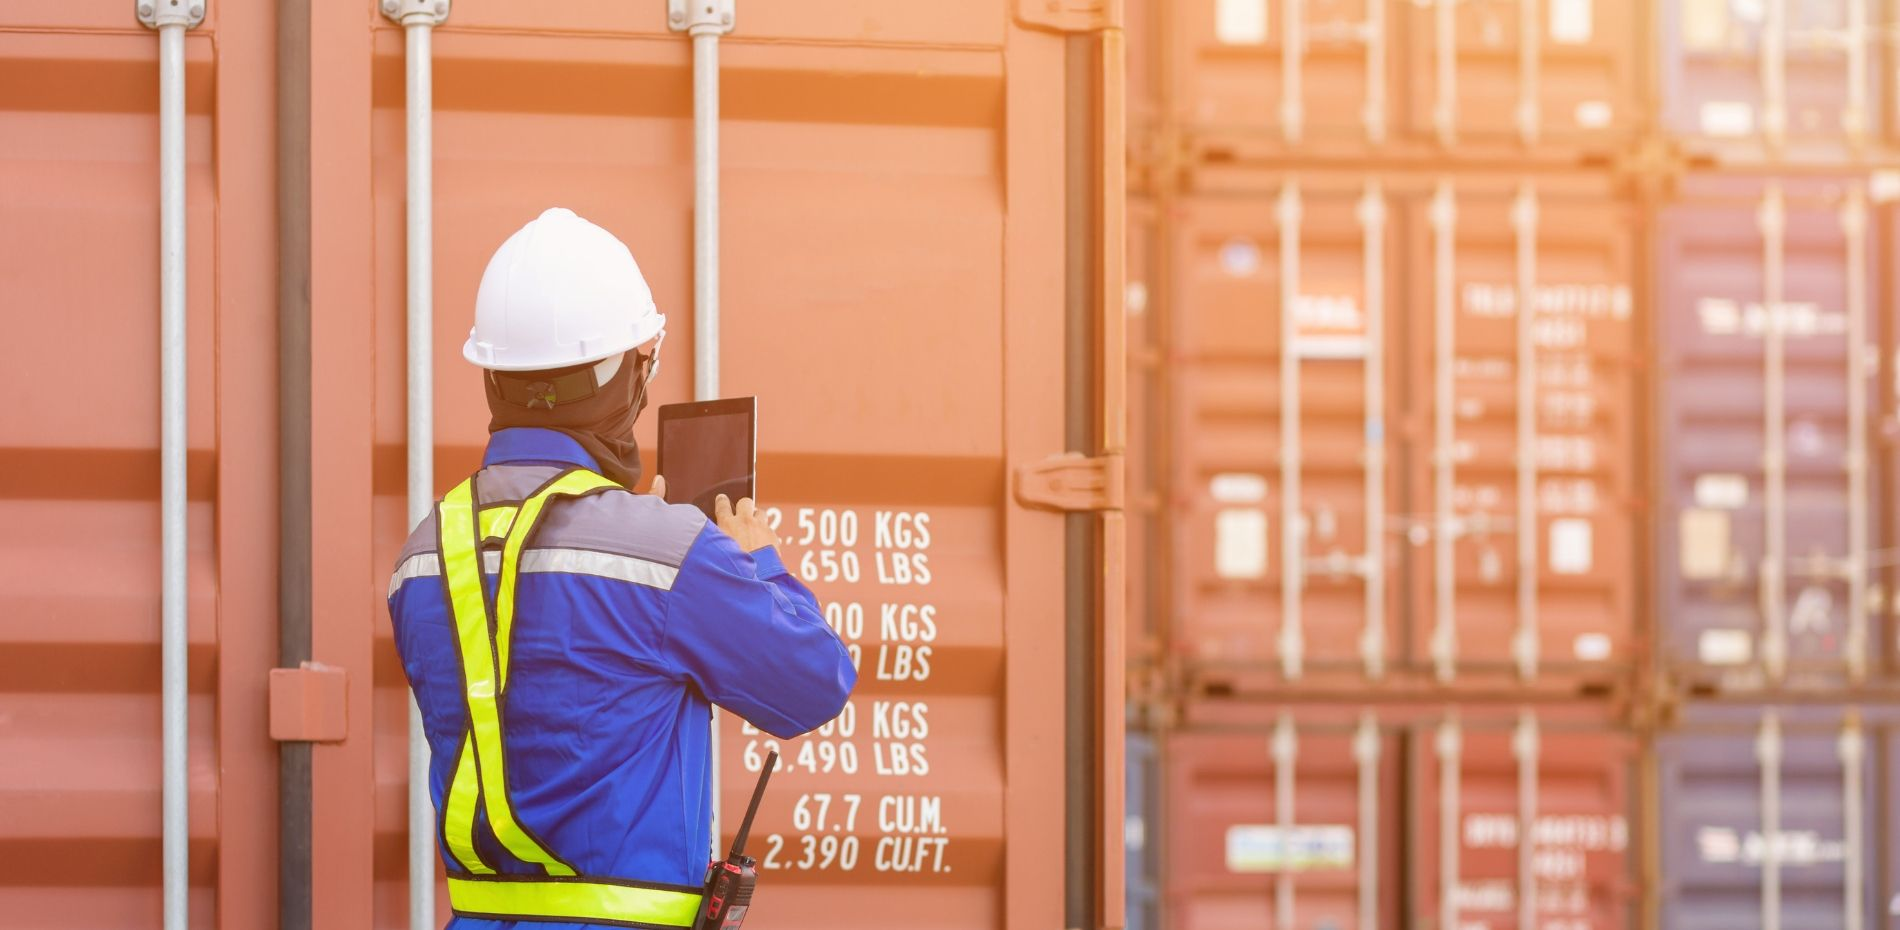 Port docker wearing hard hat and safety vest, standing in front of freight containers looking at supply chain trends on tablet